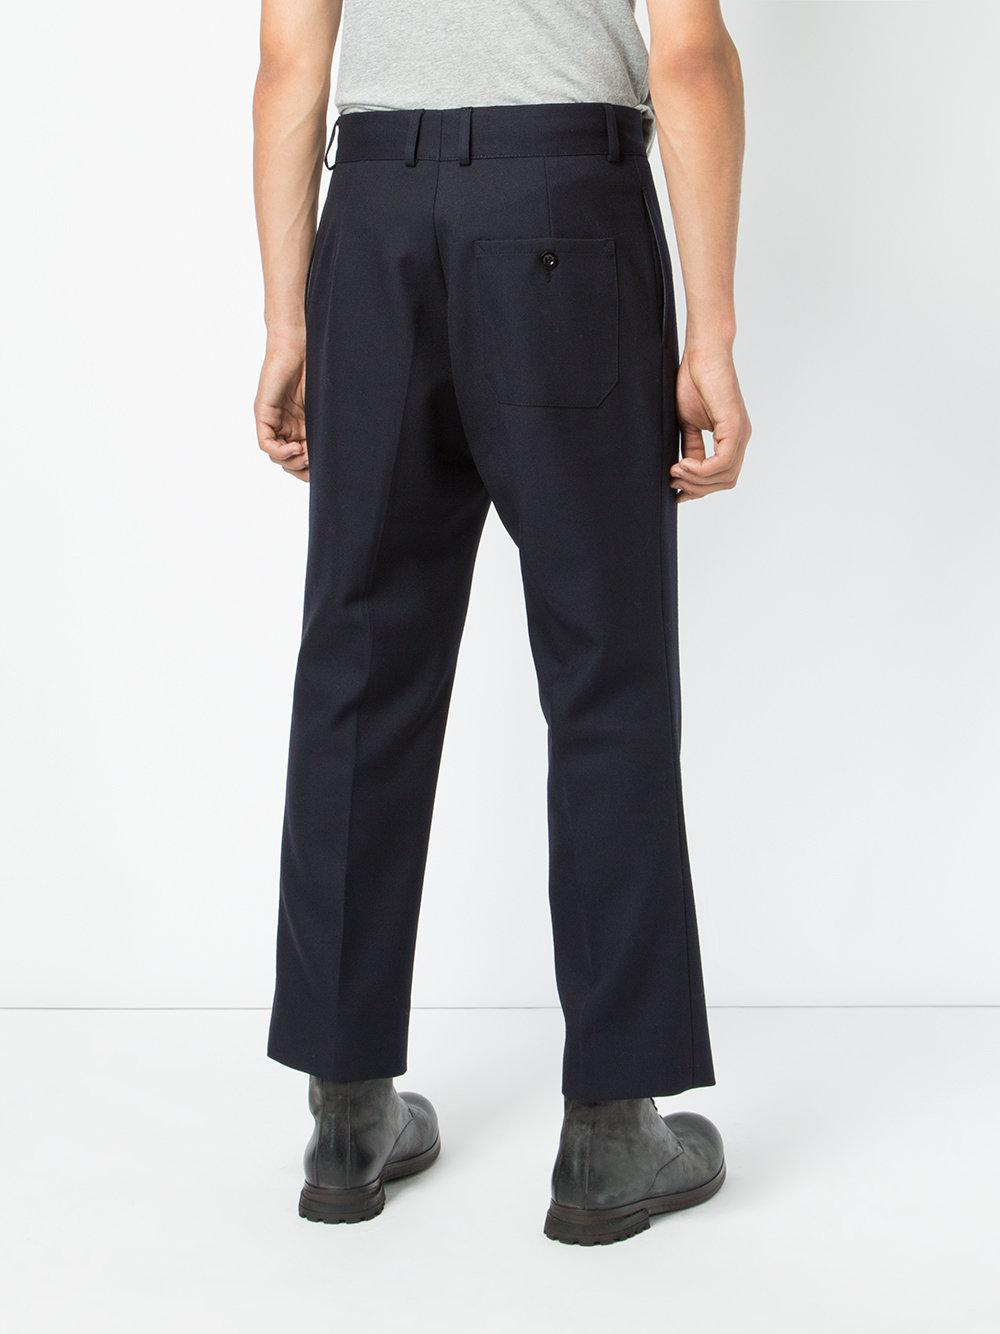 MYAR Wool Cropped Tailored Trousers in Blue for Men